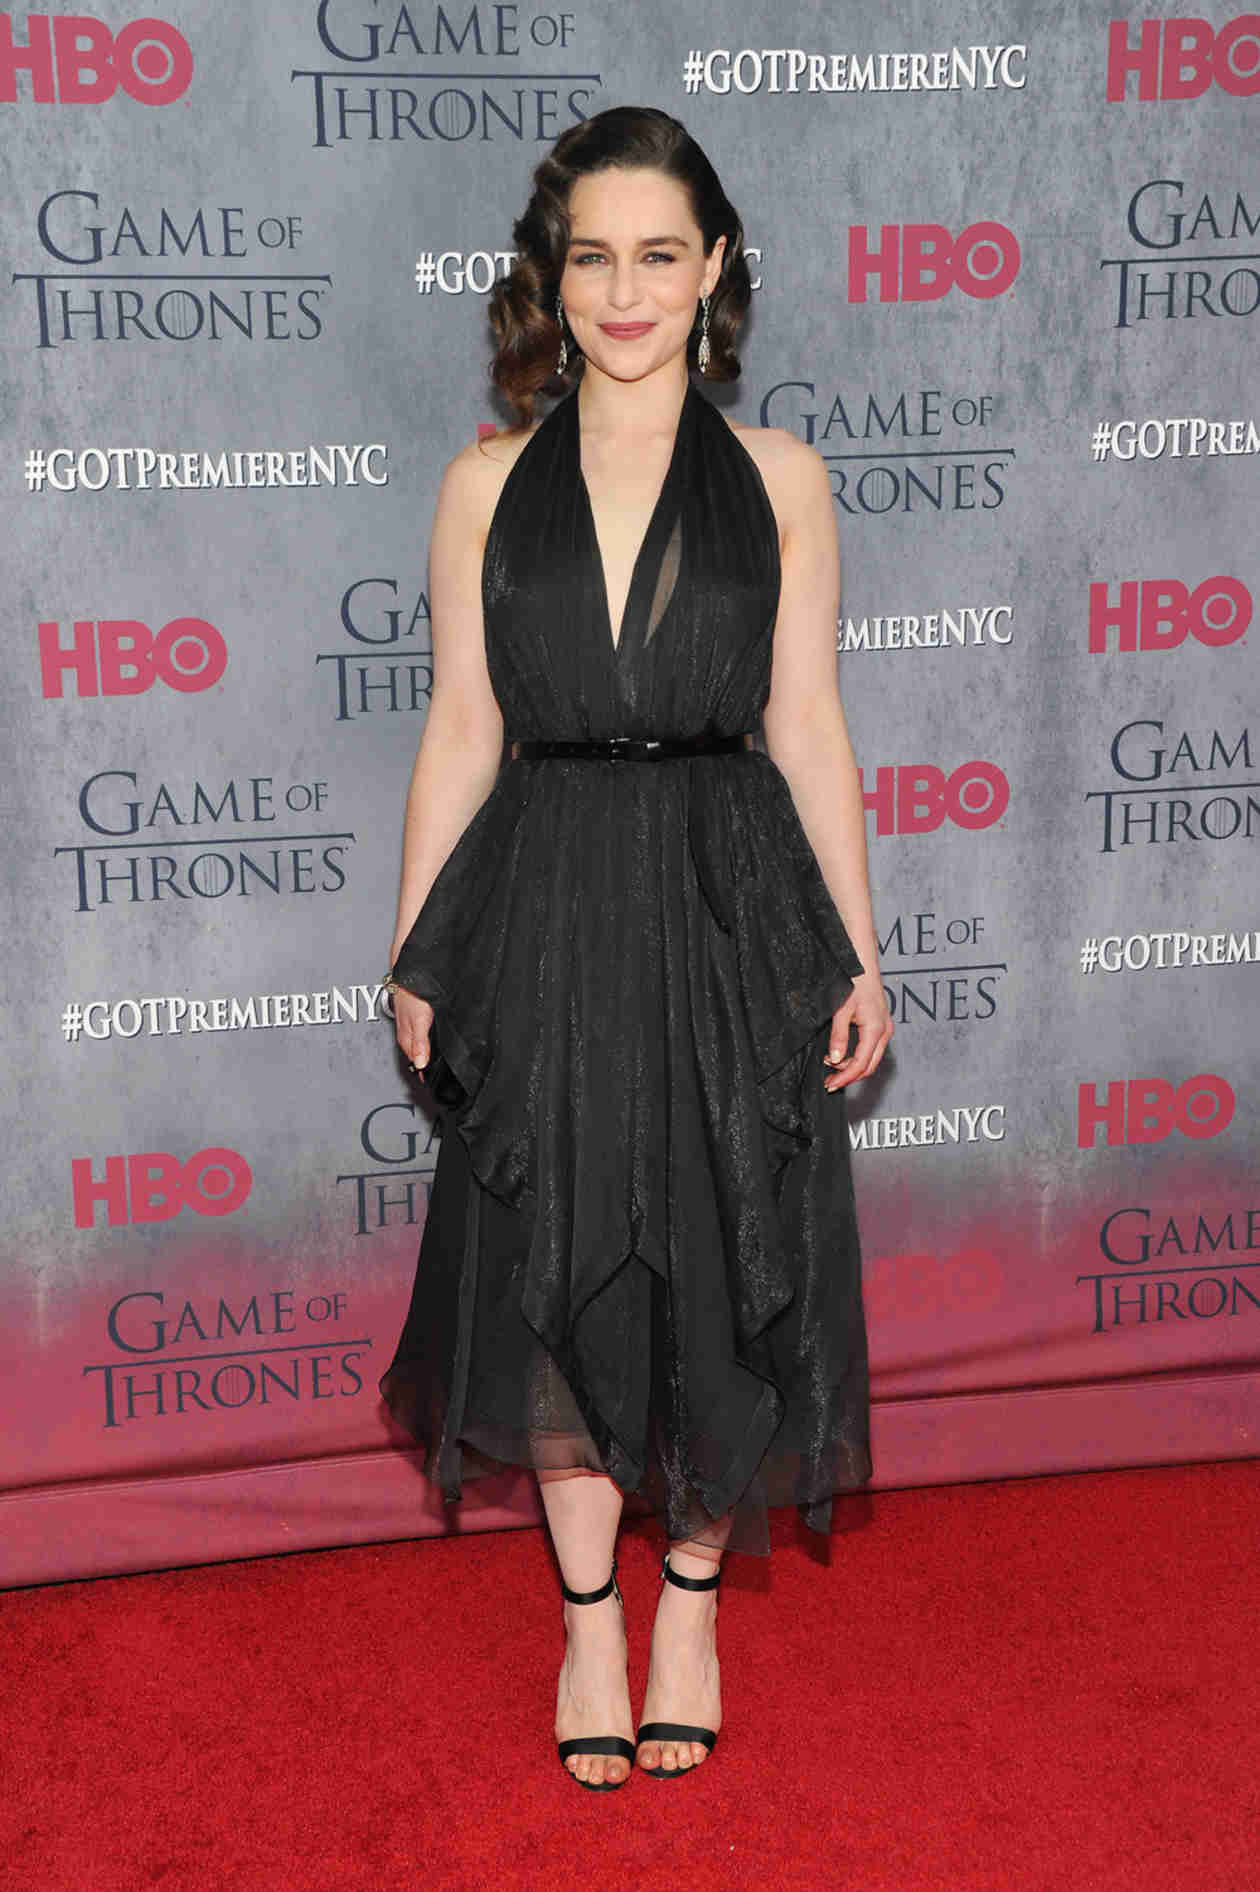 Does Emilia Clarke Have a Boyfriend?